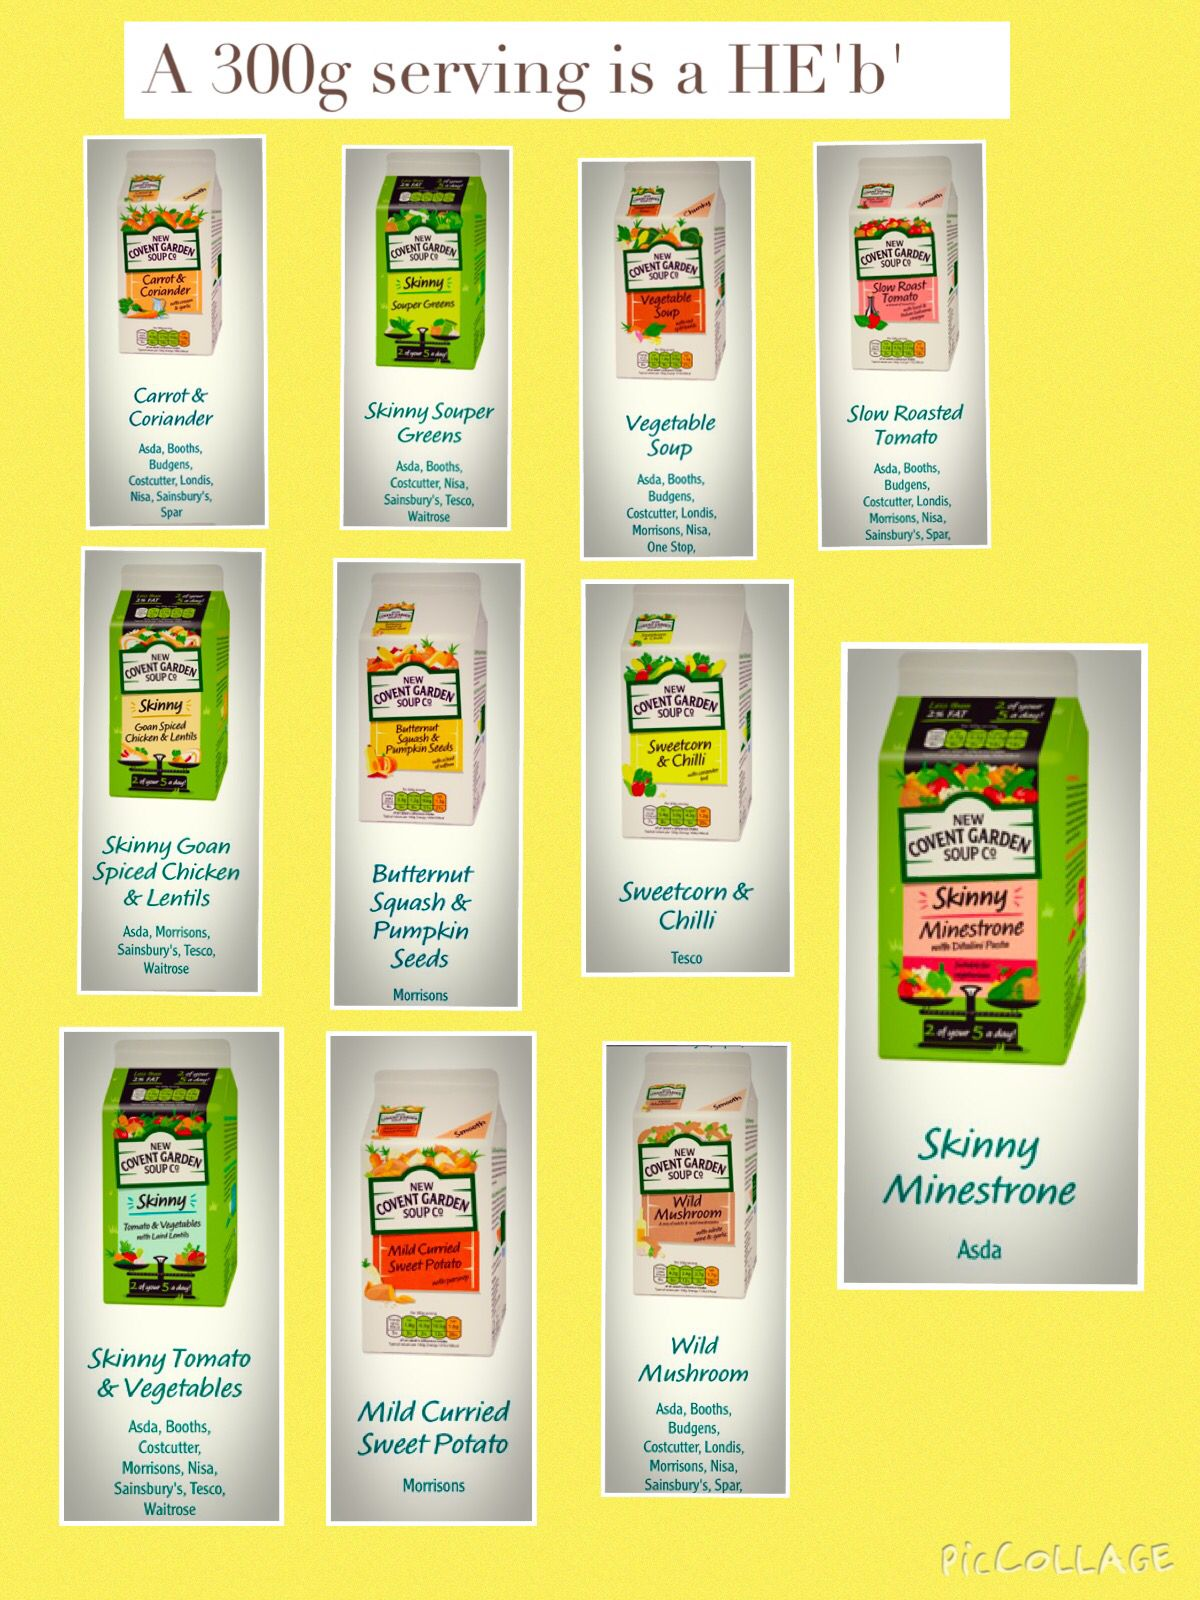 Terrific New Covent Garden Soups  Packaging  Pinterest  Gardens Soups  With Great Covent Garden With Easy On The Eye Garden Clearances Also Garden Paving Uk In Addition Rattan Garden Furniture Sale Compare Prices And Garden Centres In Wakefield As Well As Royal Garden Chinese Kenfig Hill Menu Additionally Small Terraced House Garden Ideas From Pinterestcom With   Great New Covent Garden Soups  Packaging  Pinterest  Gardens Soups  With Easy On The Eye Covent Garden And Terrific Garden Clearances Also Garden Paving Uk In Addition Rattan Garden Furniture Sale Compare Prices From Pinterestcom